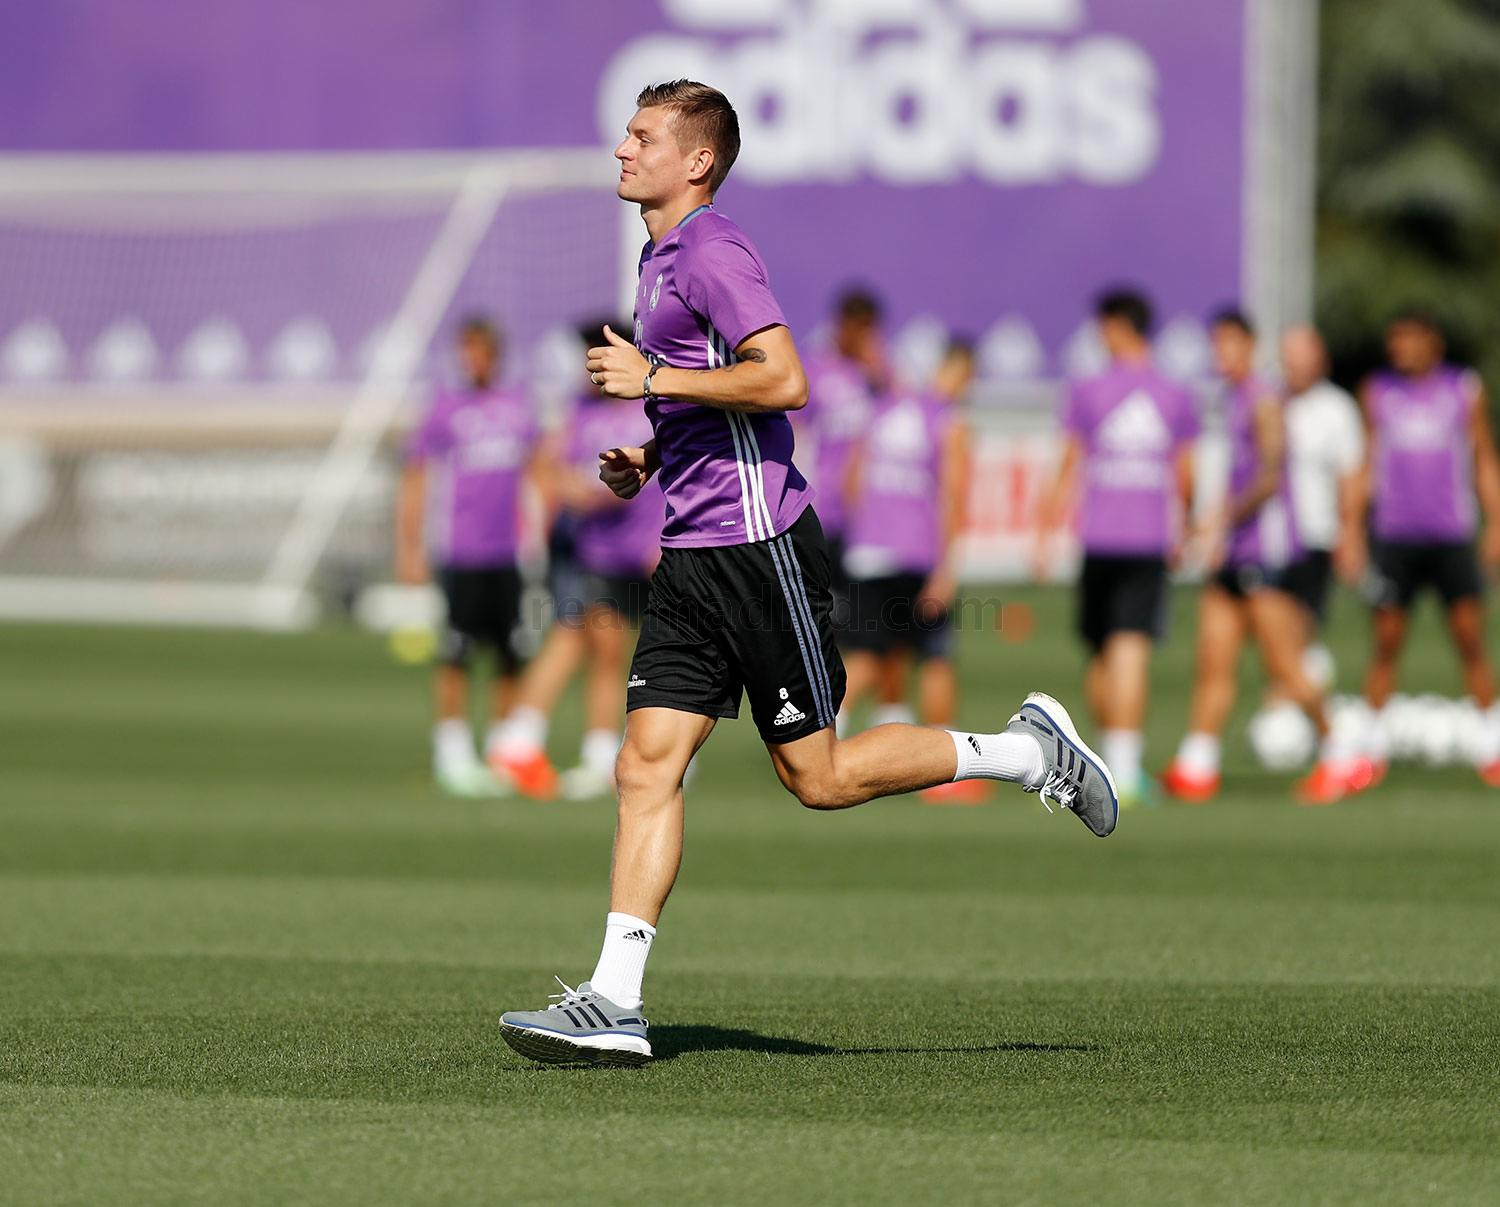 Real Madrid - Entrenamiento del Real Madrid - 11-09-2016